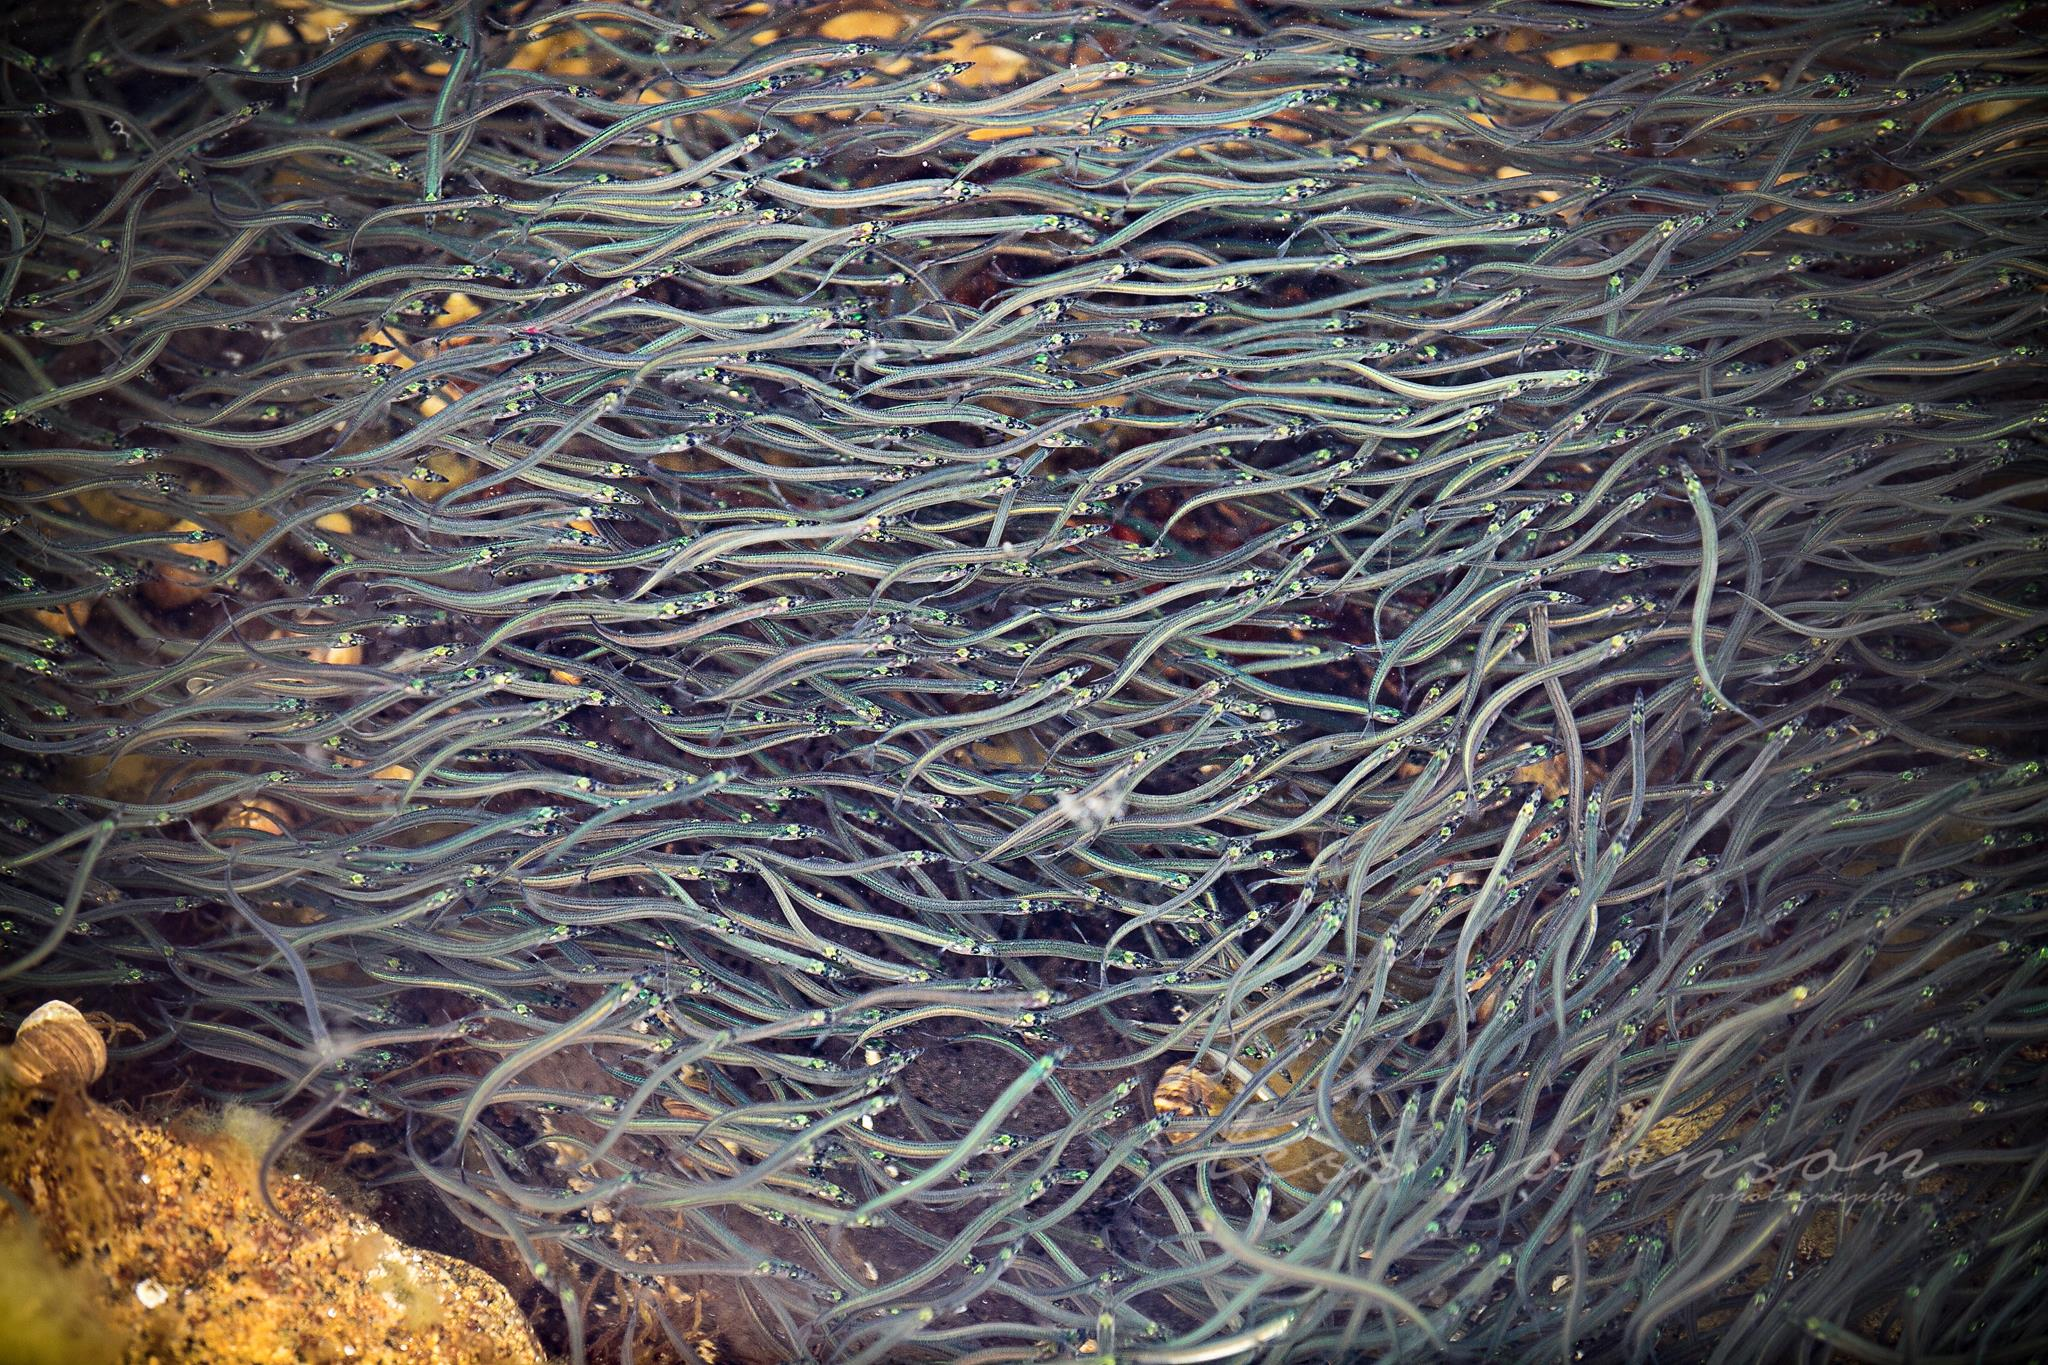 Photo of elvers by Tess Johnson in Maine.